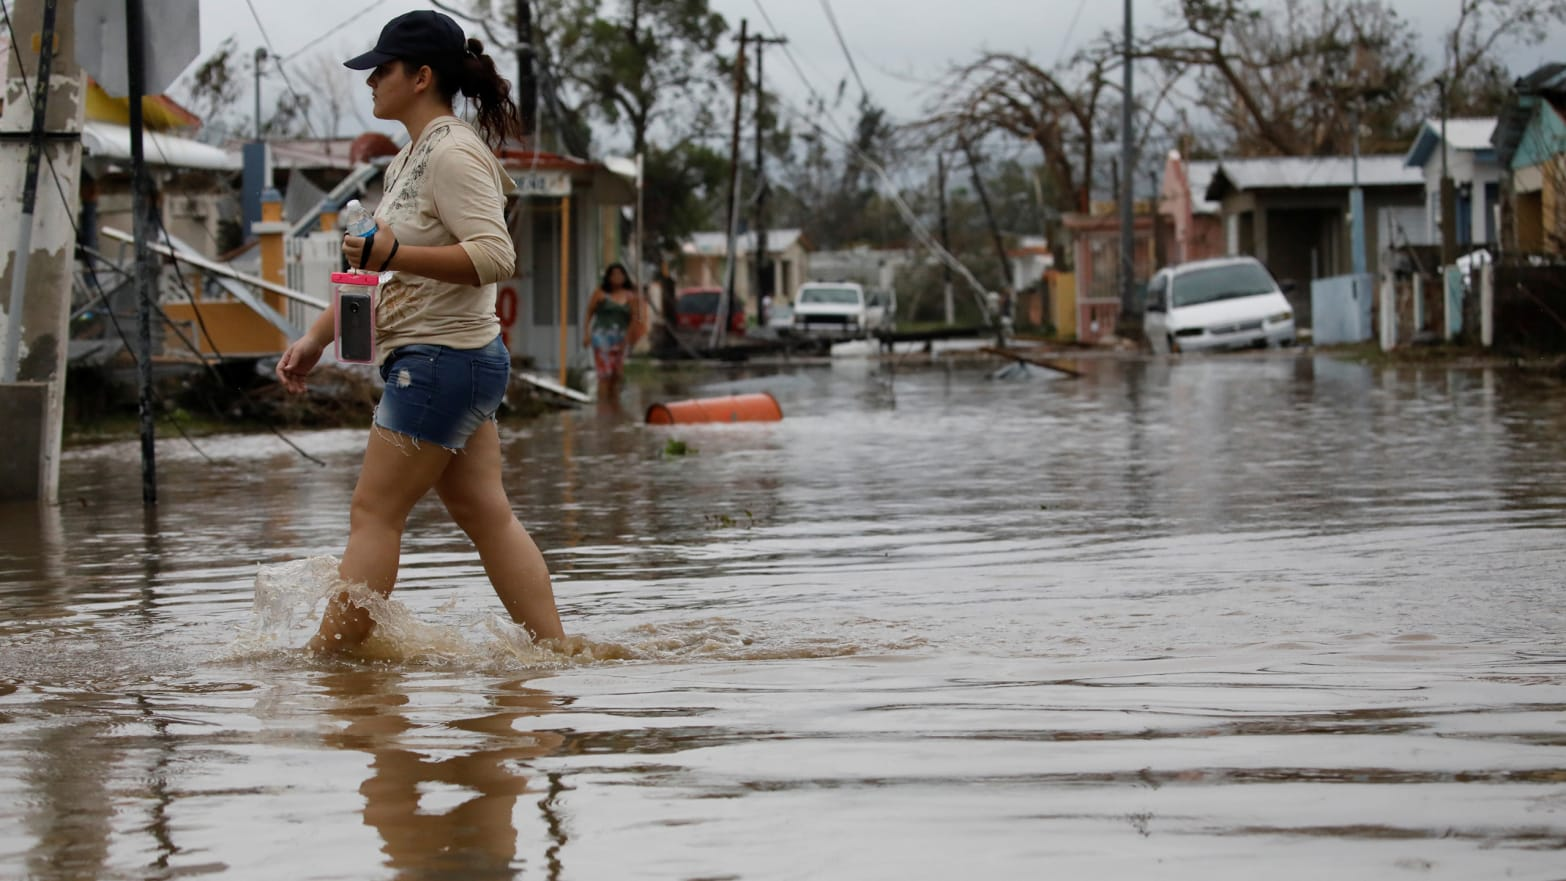 A woman wades through a flooded street after the area was hit by Hurricane Maria in Salinas, Puerto Rico, September 21, 2017.